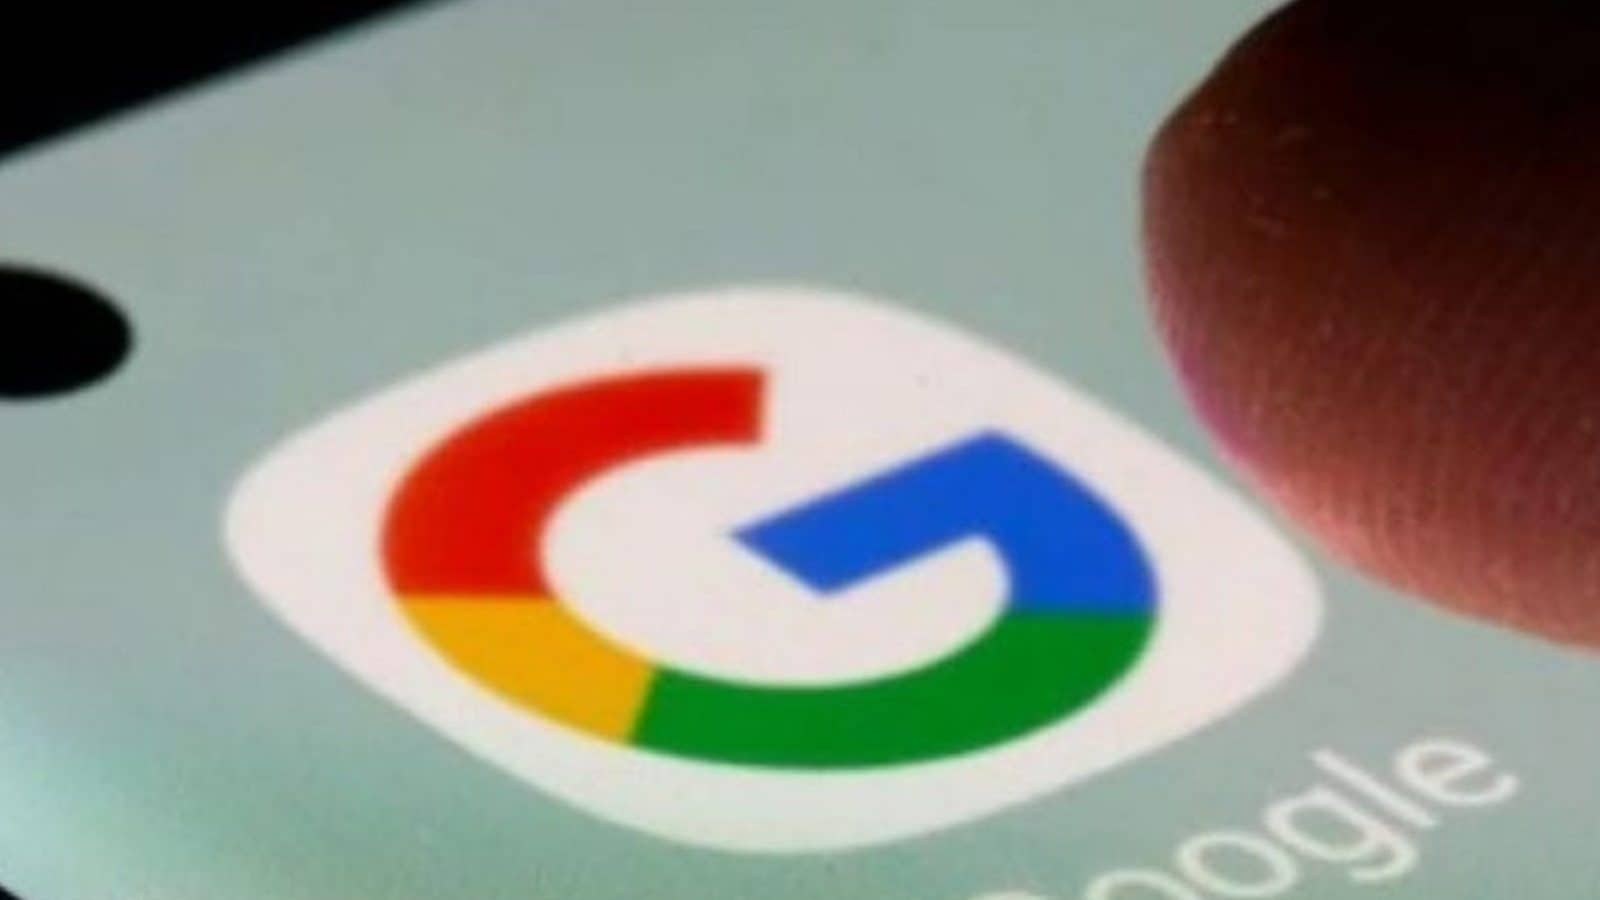 Google Turns 23: Interesting Facts About the Internet Giant